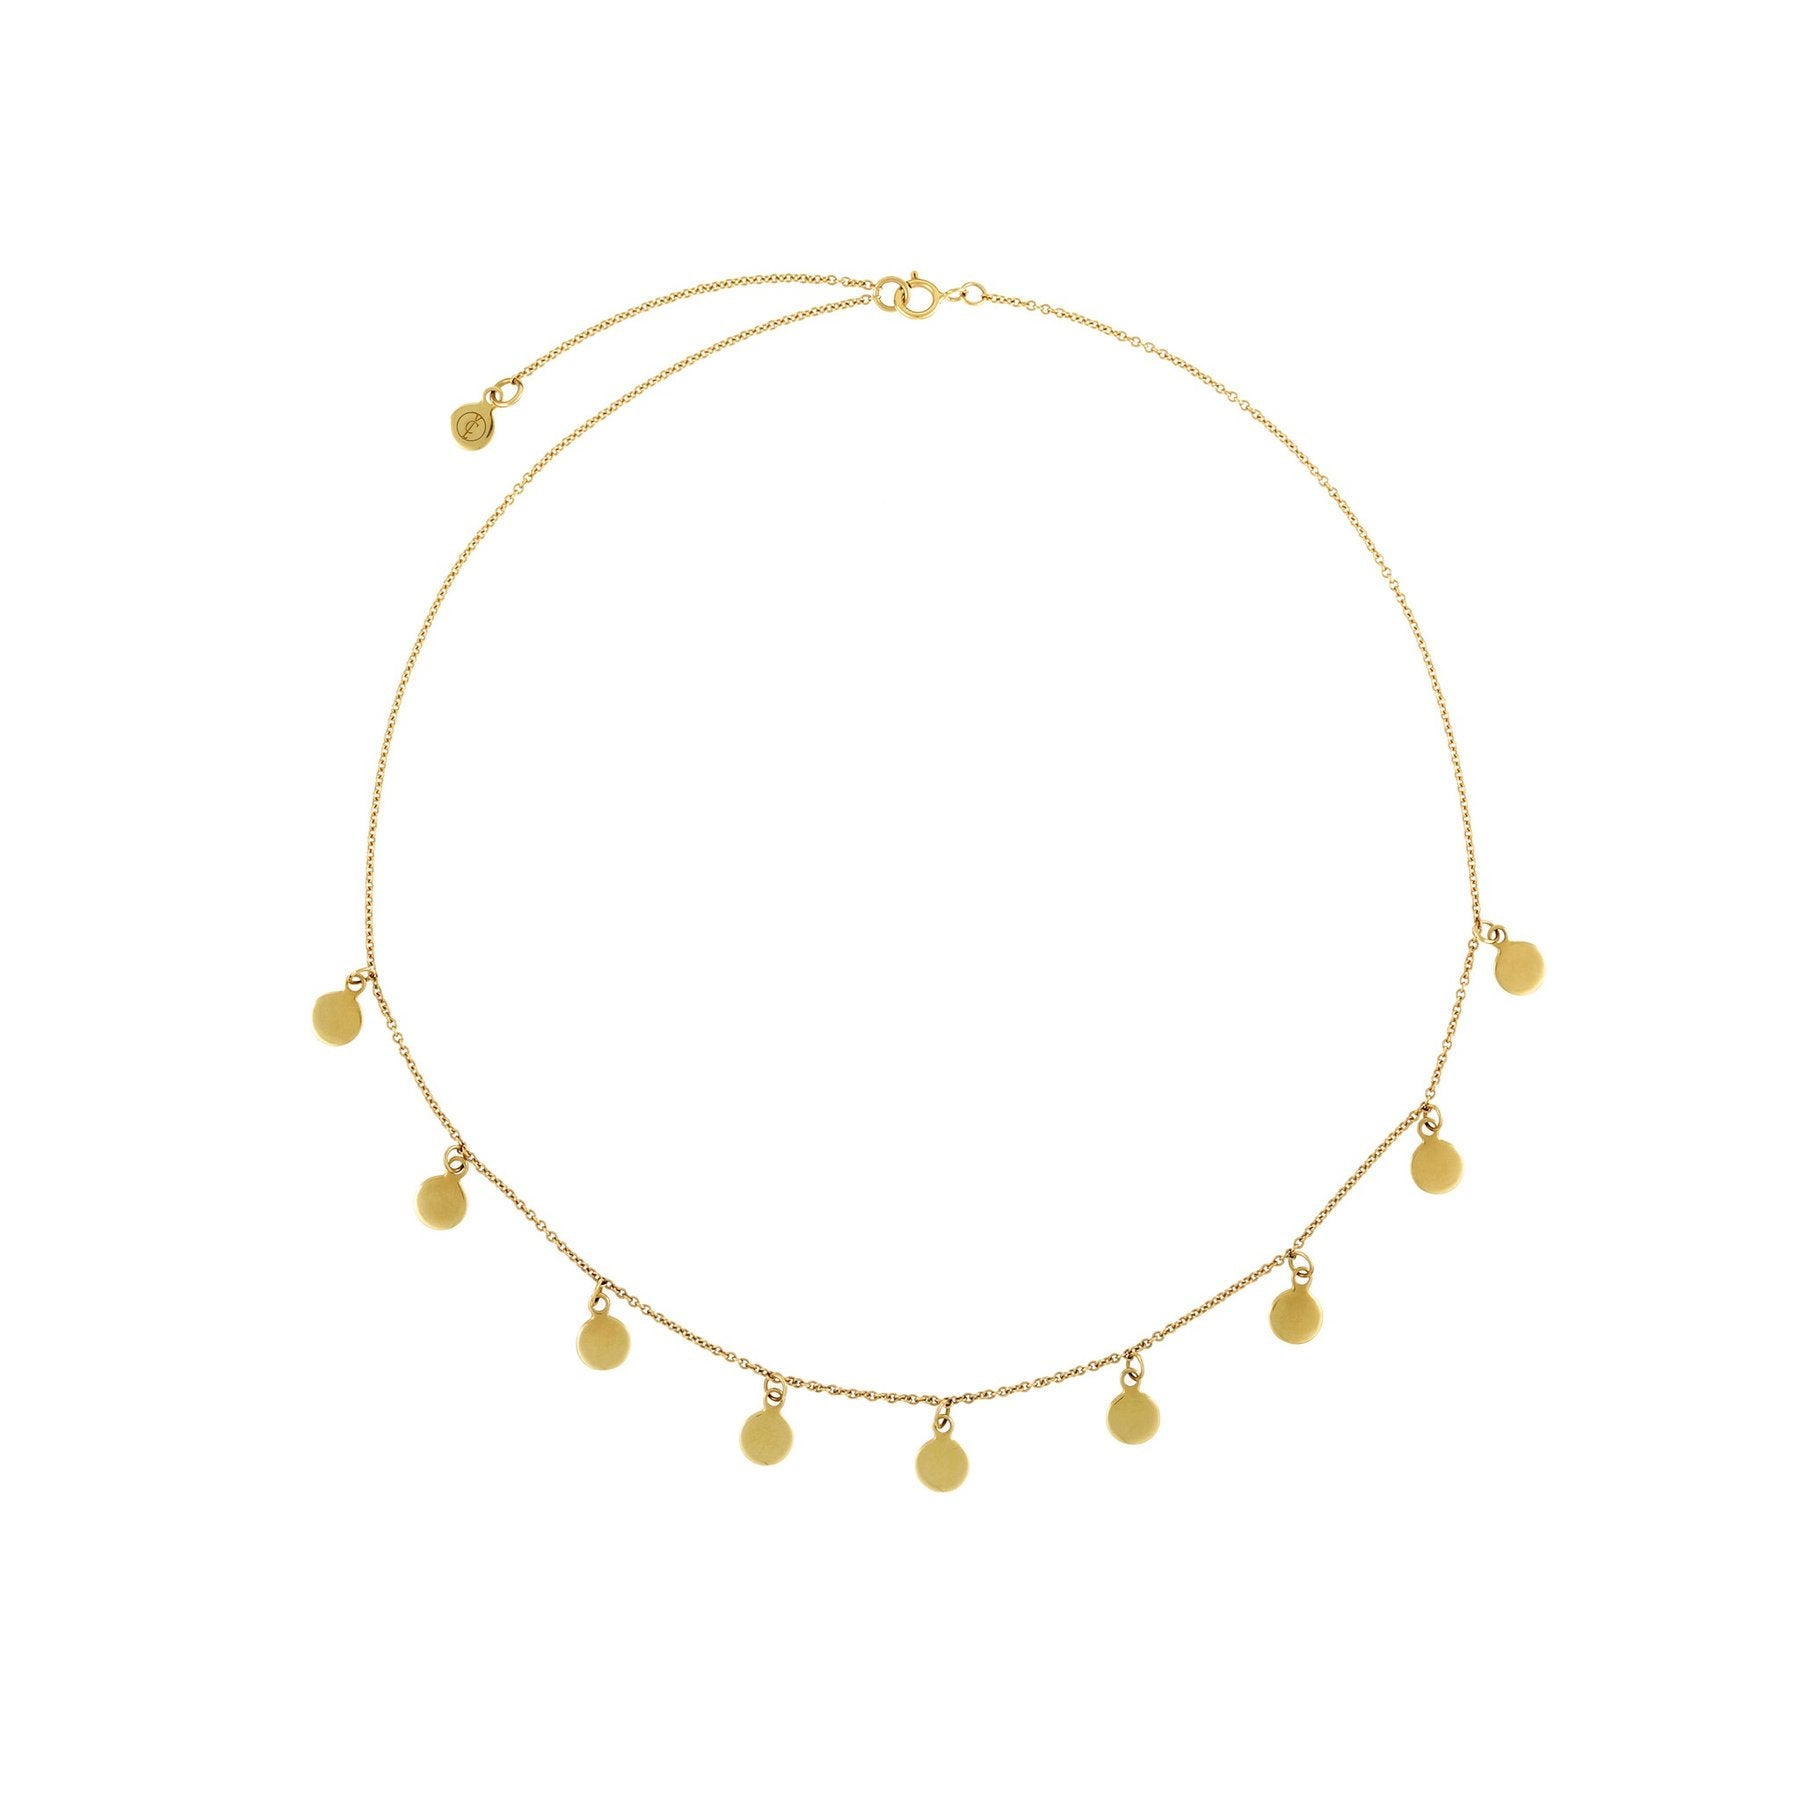 Constellation Choker - Gold Fill - Prae Store